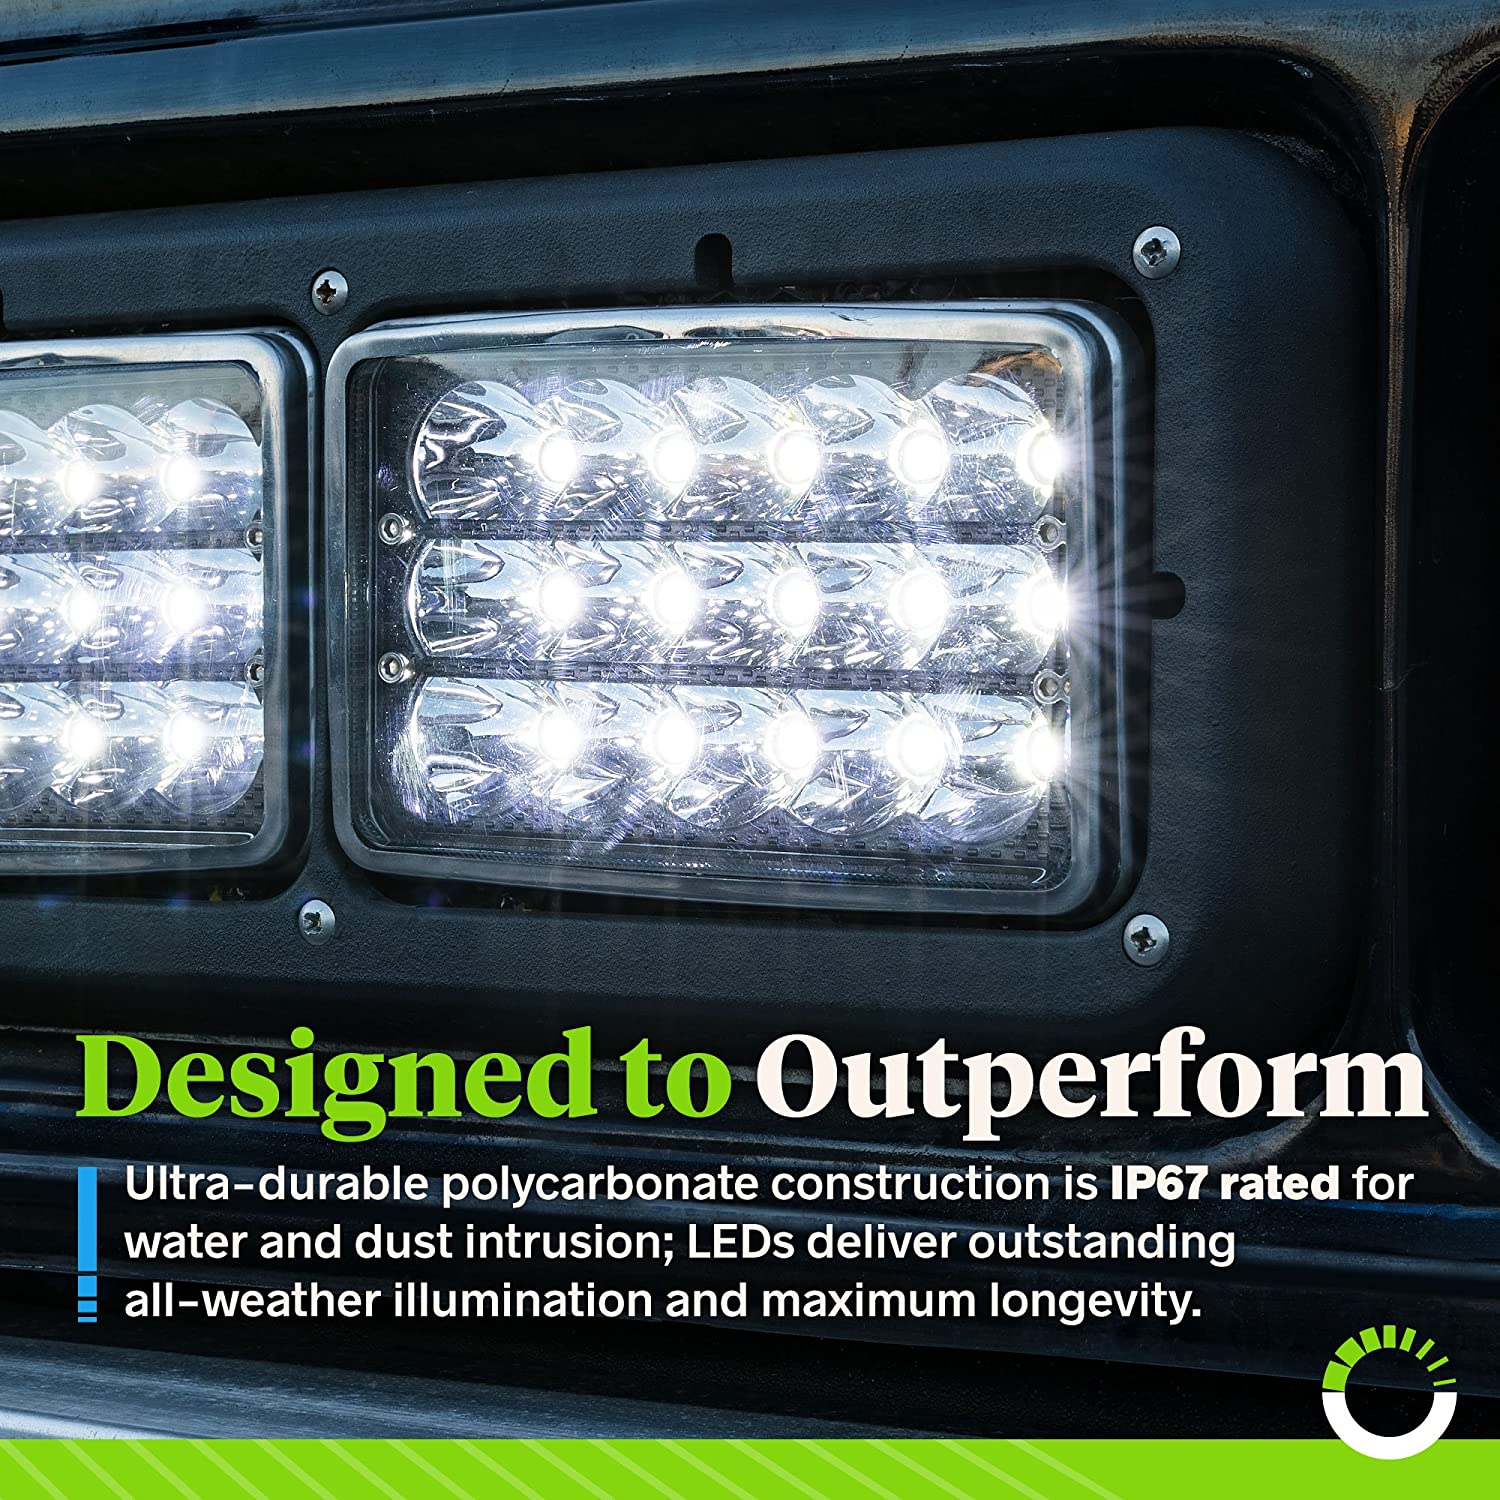 4pc Universal 4x6 45W LED Rectangular Sealed Beam Headlight Assembly with Black Housing High//Low Beam - for Jeep Wrangler /& More IP67 H4 Socket H4651 H4652 H4656 H4666 H6545 Replacement